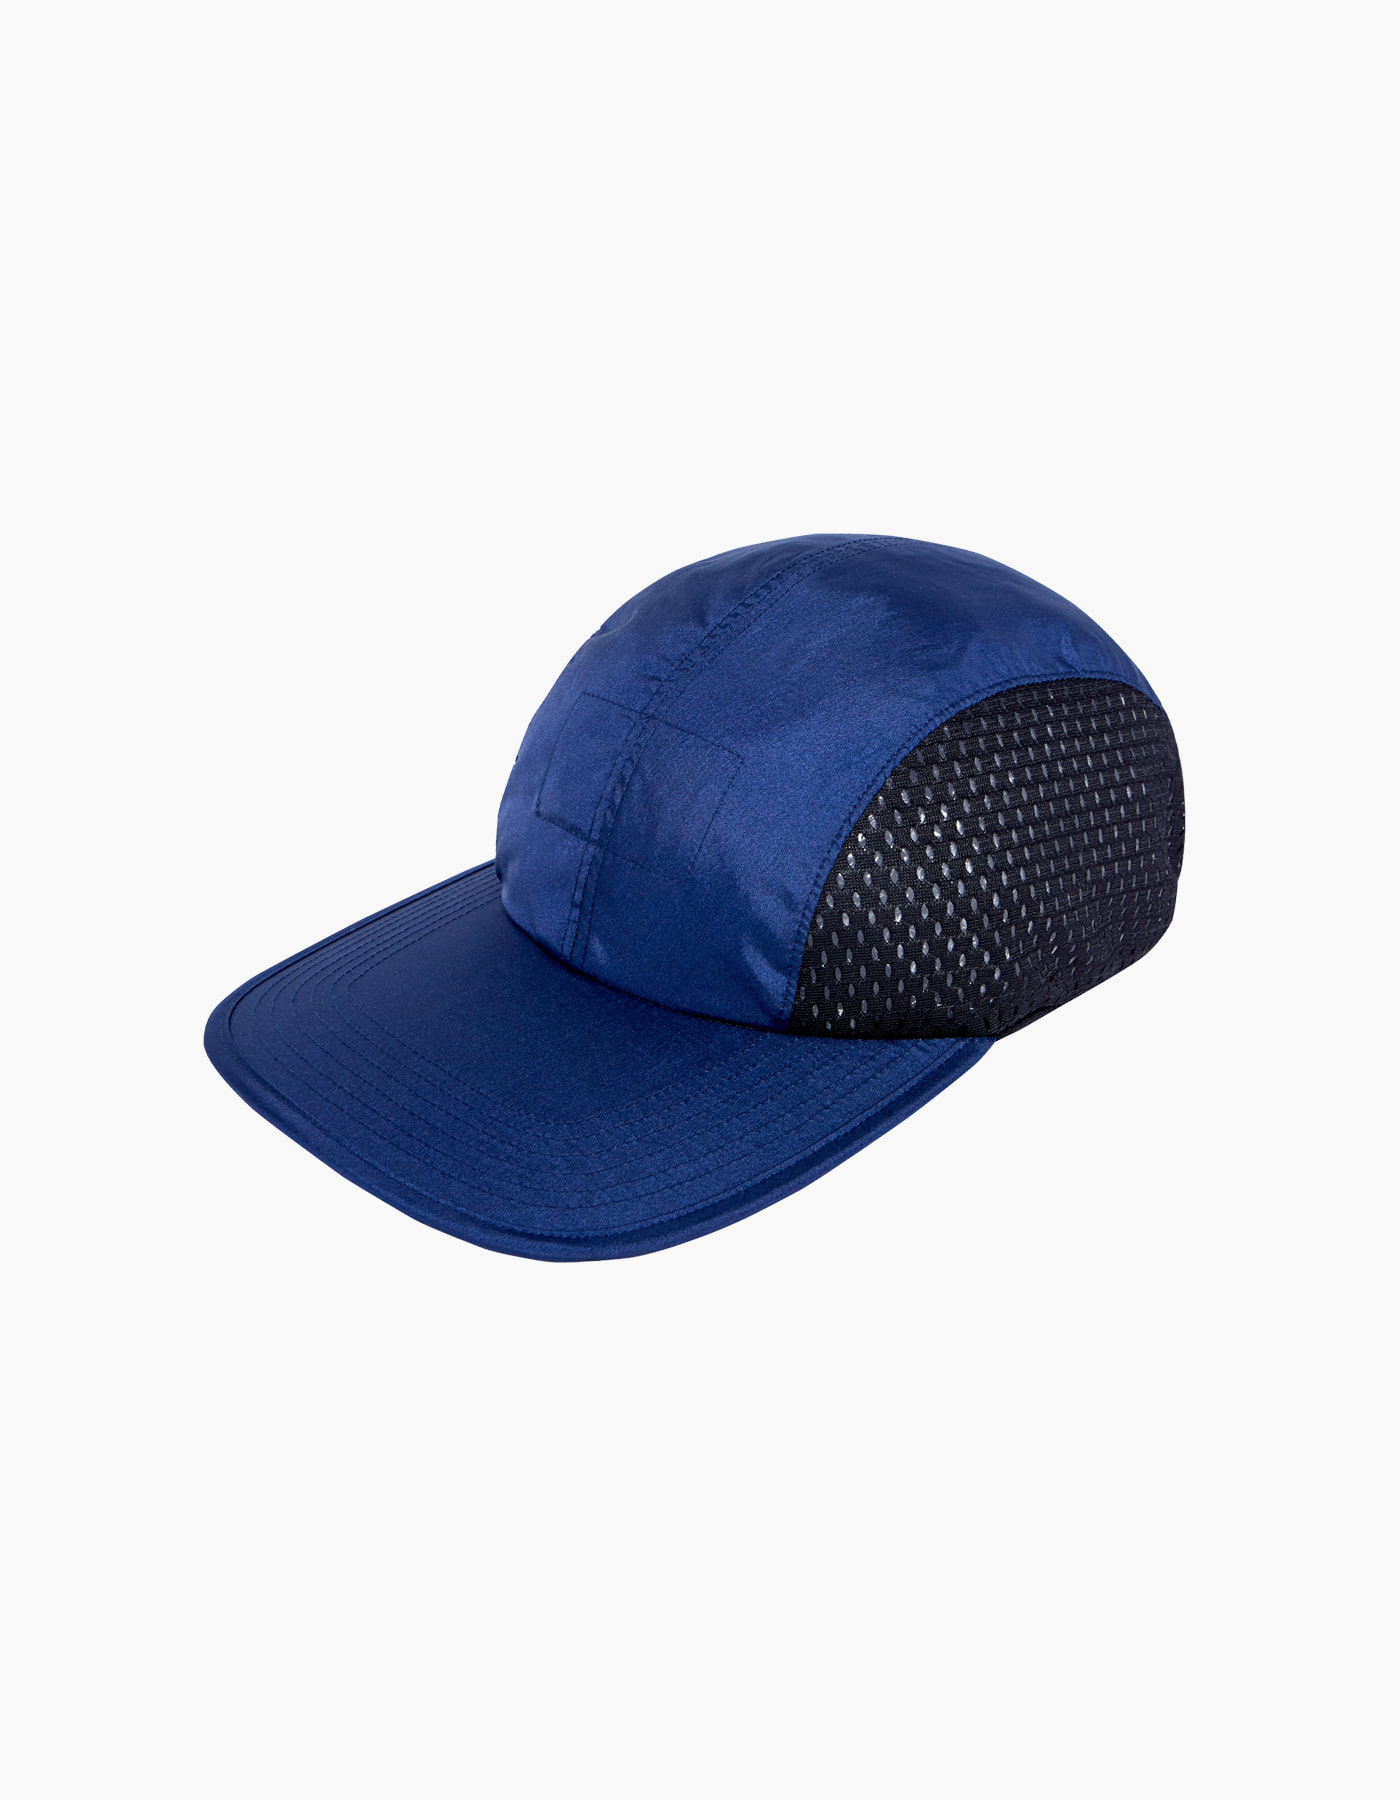 NYLON AURORA WASHER CAP II / NAVY